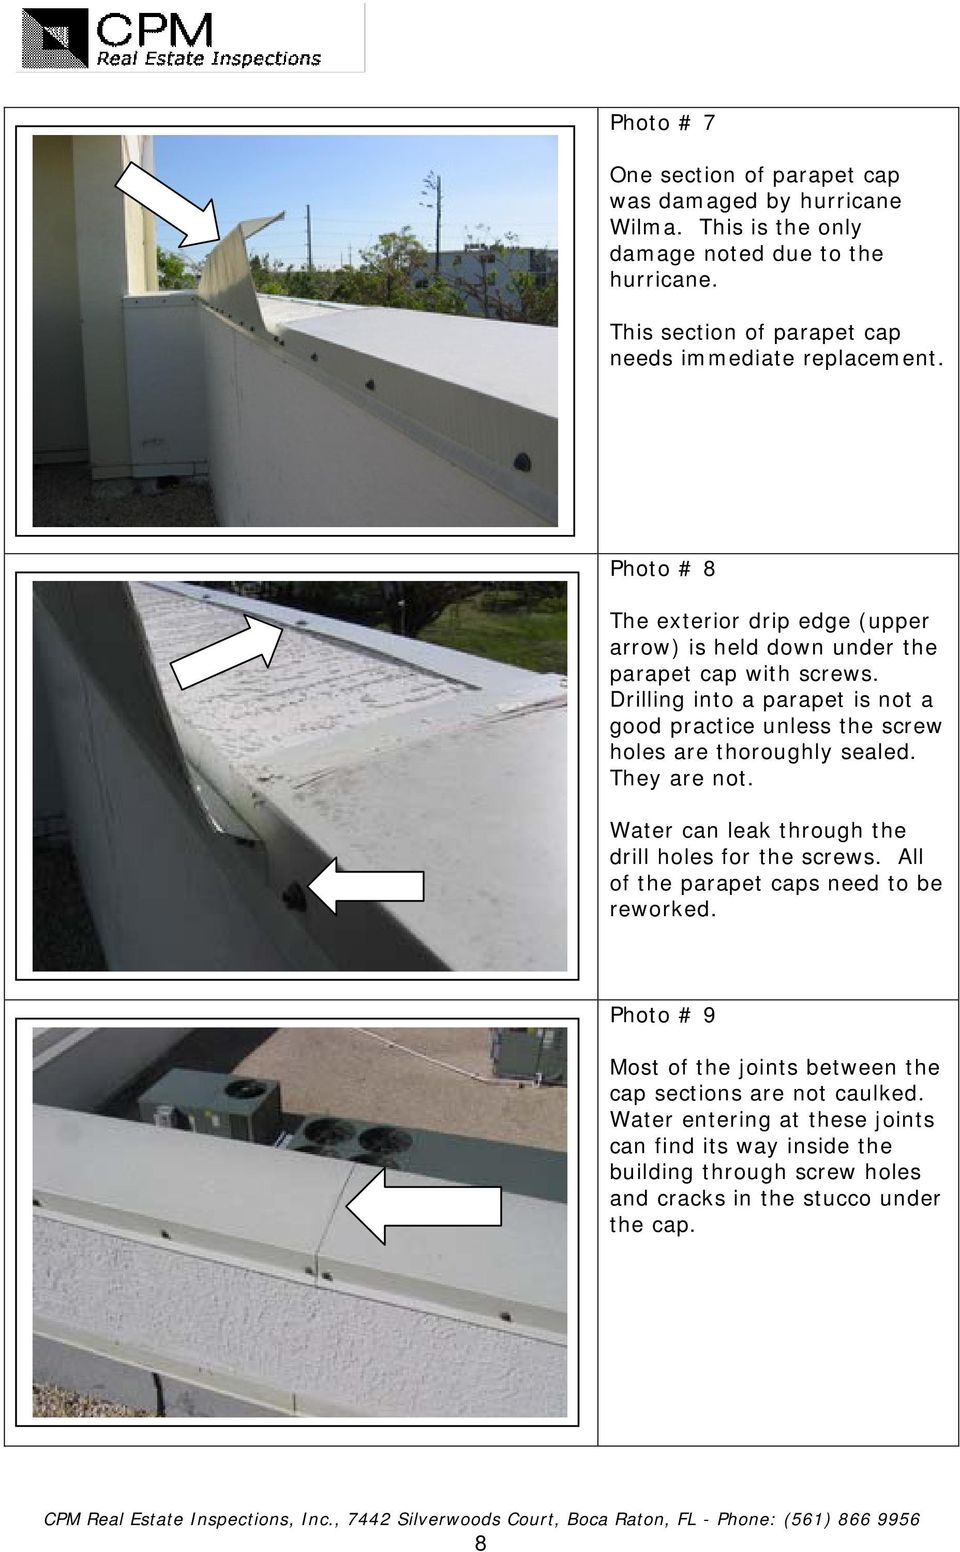 Drilling into a parapet is not a good practice unless the screw holes are thoroughly sealed. They are not. Water can leak through the drill holes for the screws.